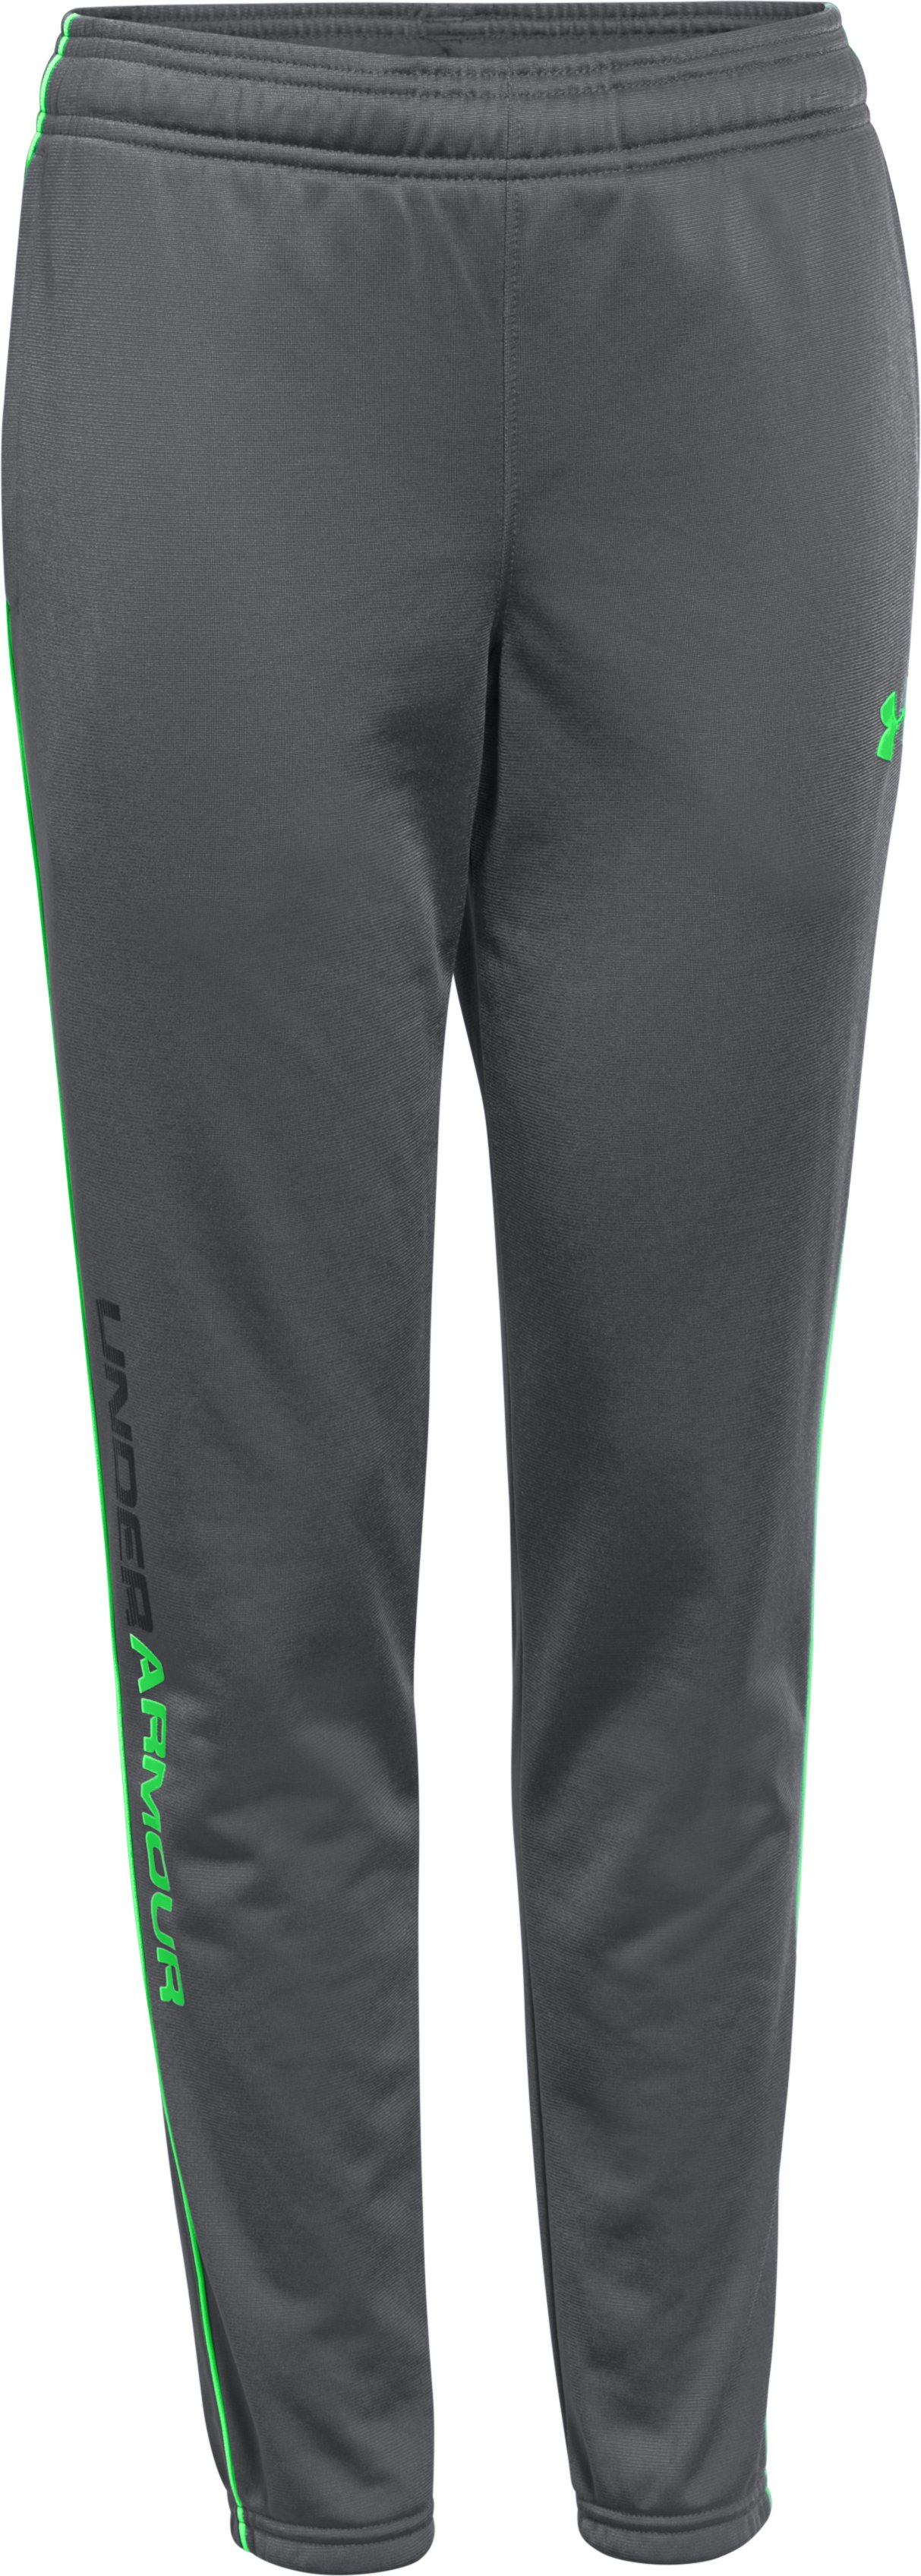 Boys' UA Contender Tapered Warm-Up Pants, Graphite, zoomed image